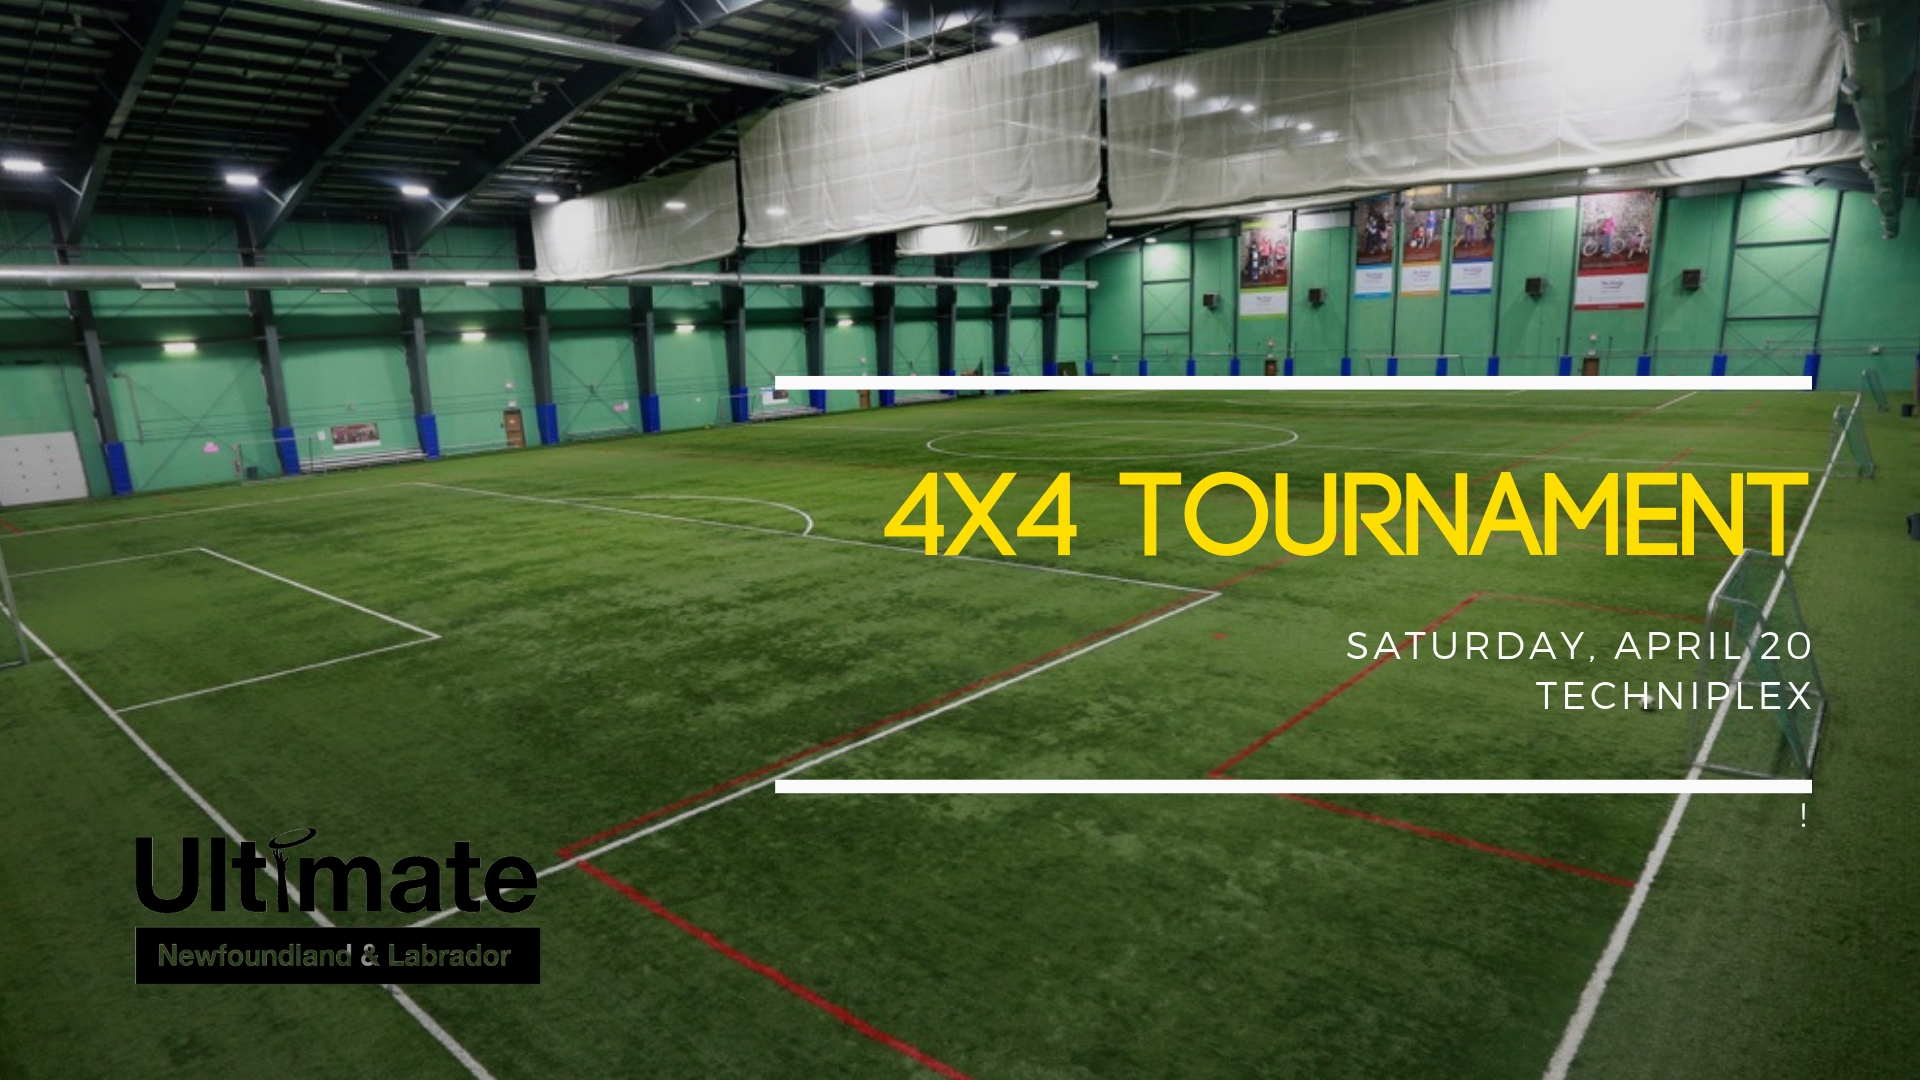 Ultimate NL's inaugural 4-on-4 tournament will be held on April 20, 2019 at the Techniplex.